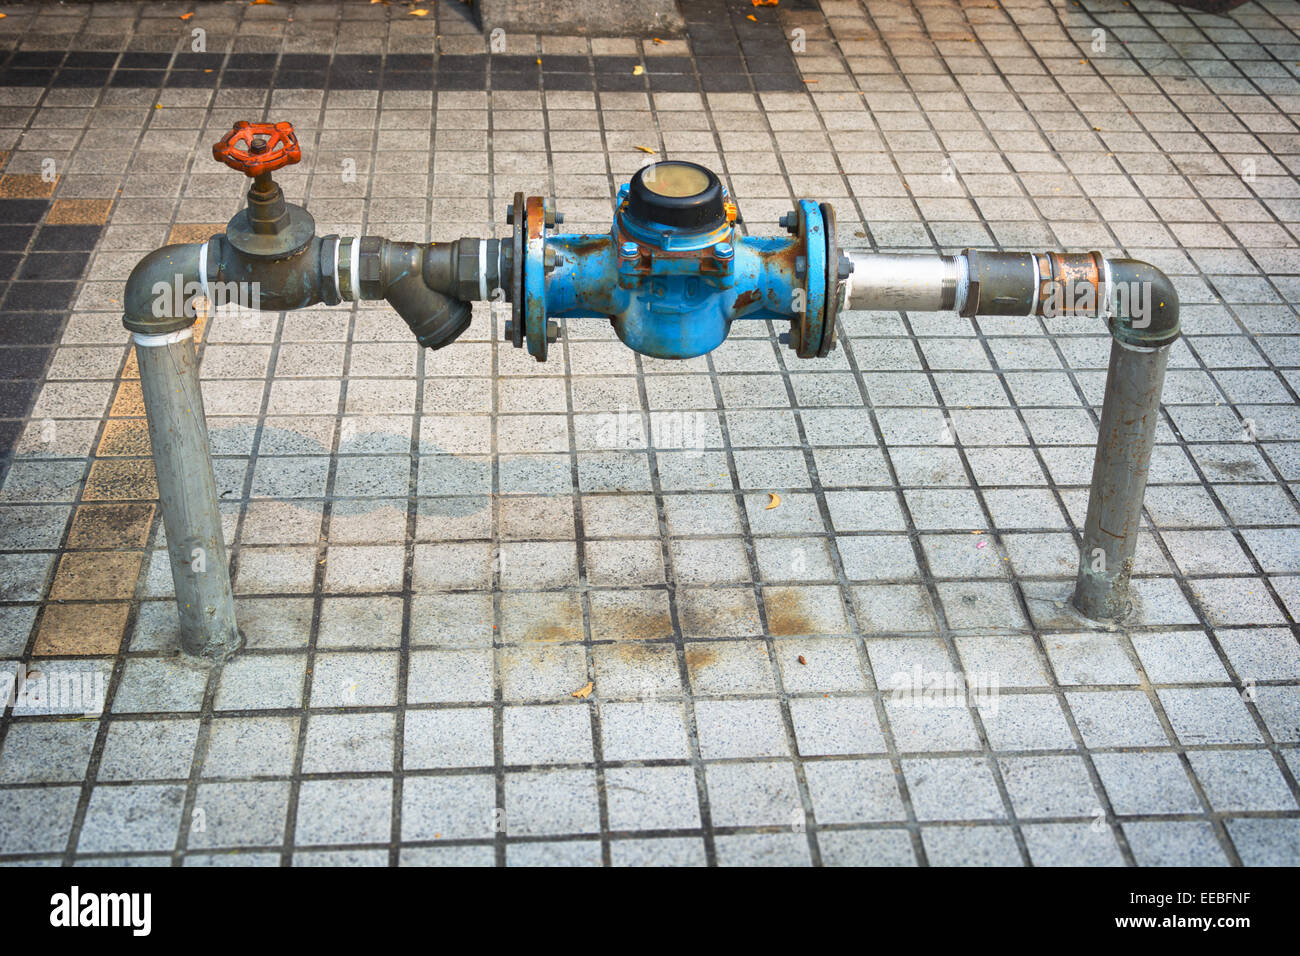 Water pipes with a meter and main shutoff valve, protruding from the sidewalk along a public street. - Stock Image